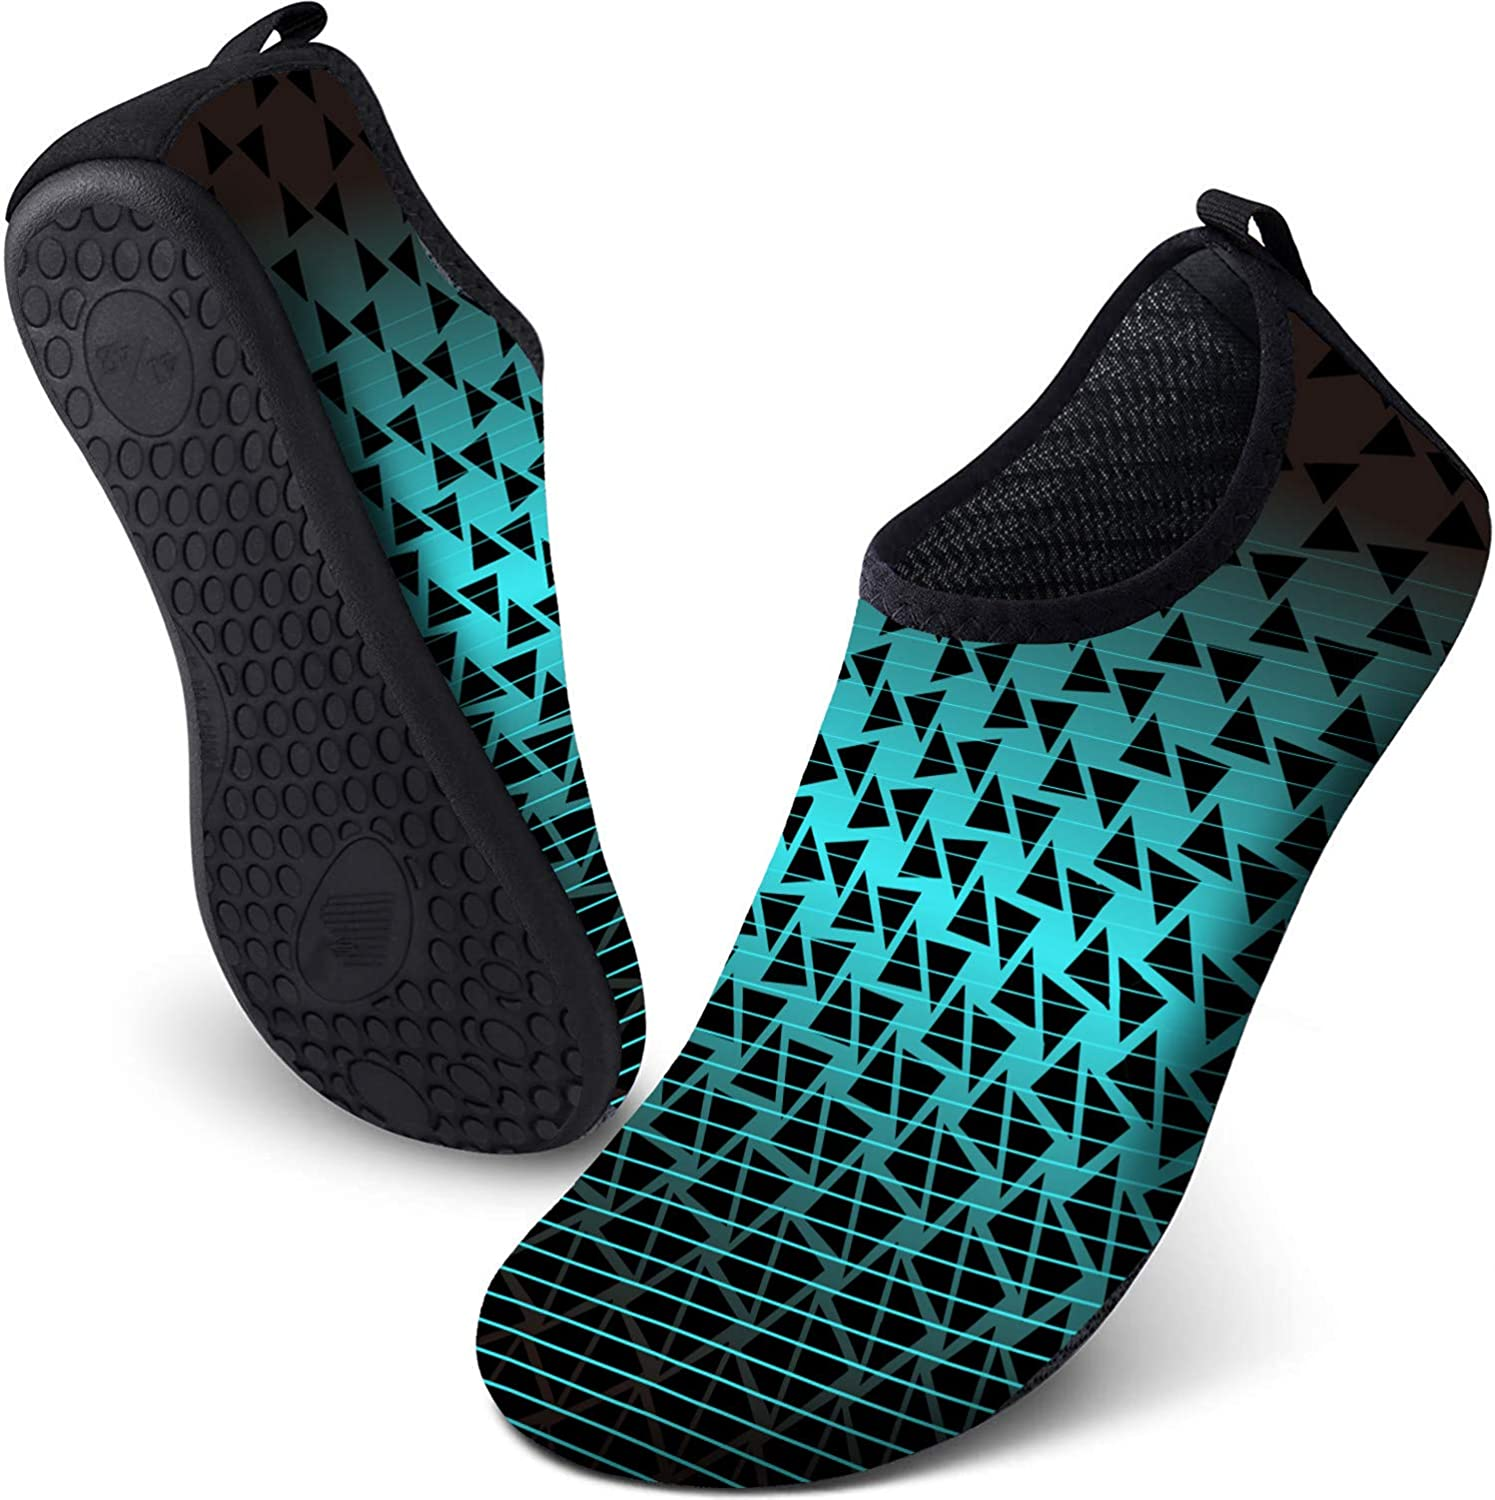 INTERESTPRINT Mens Quick Dry Barefoot Aqua Shoes Fish Shells Outdoor Beach Swimming Water Socks